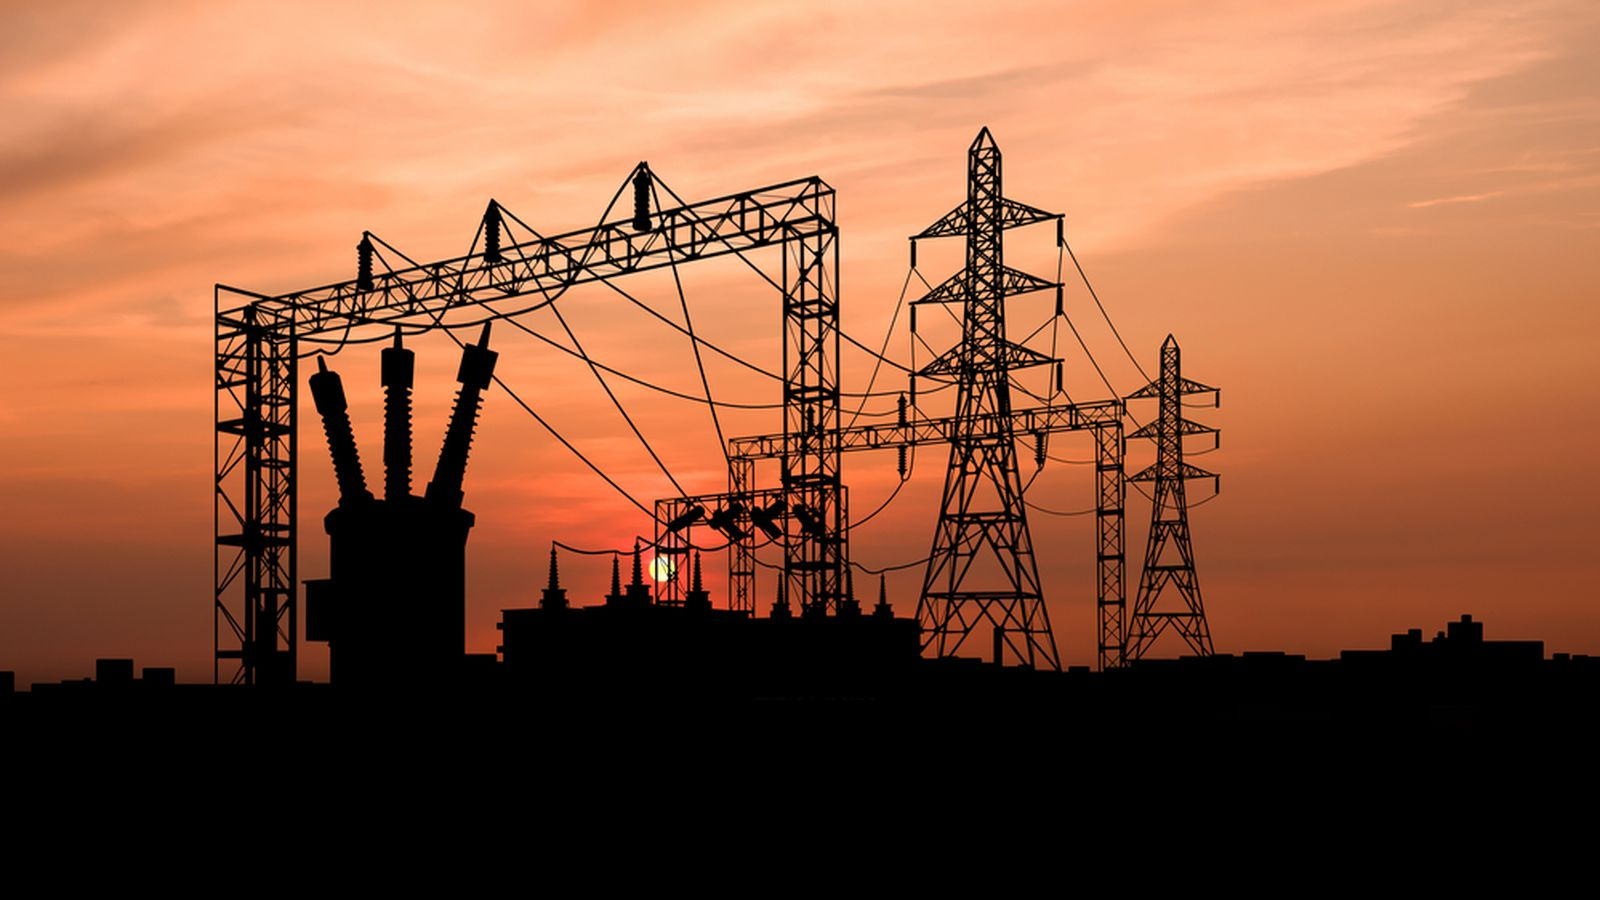 Electric Power Utilities : The simple reason most power utilities suck vox